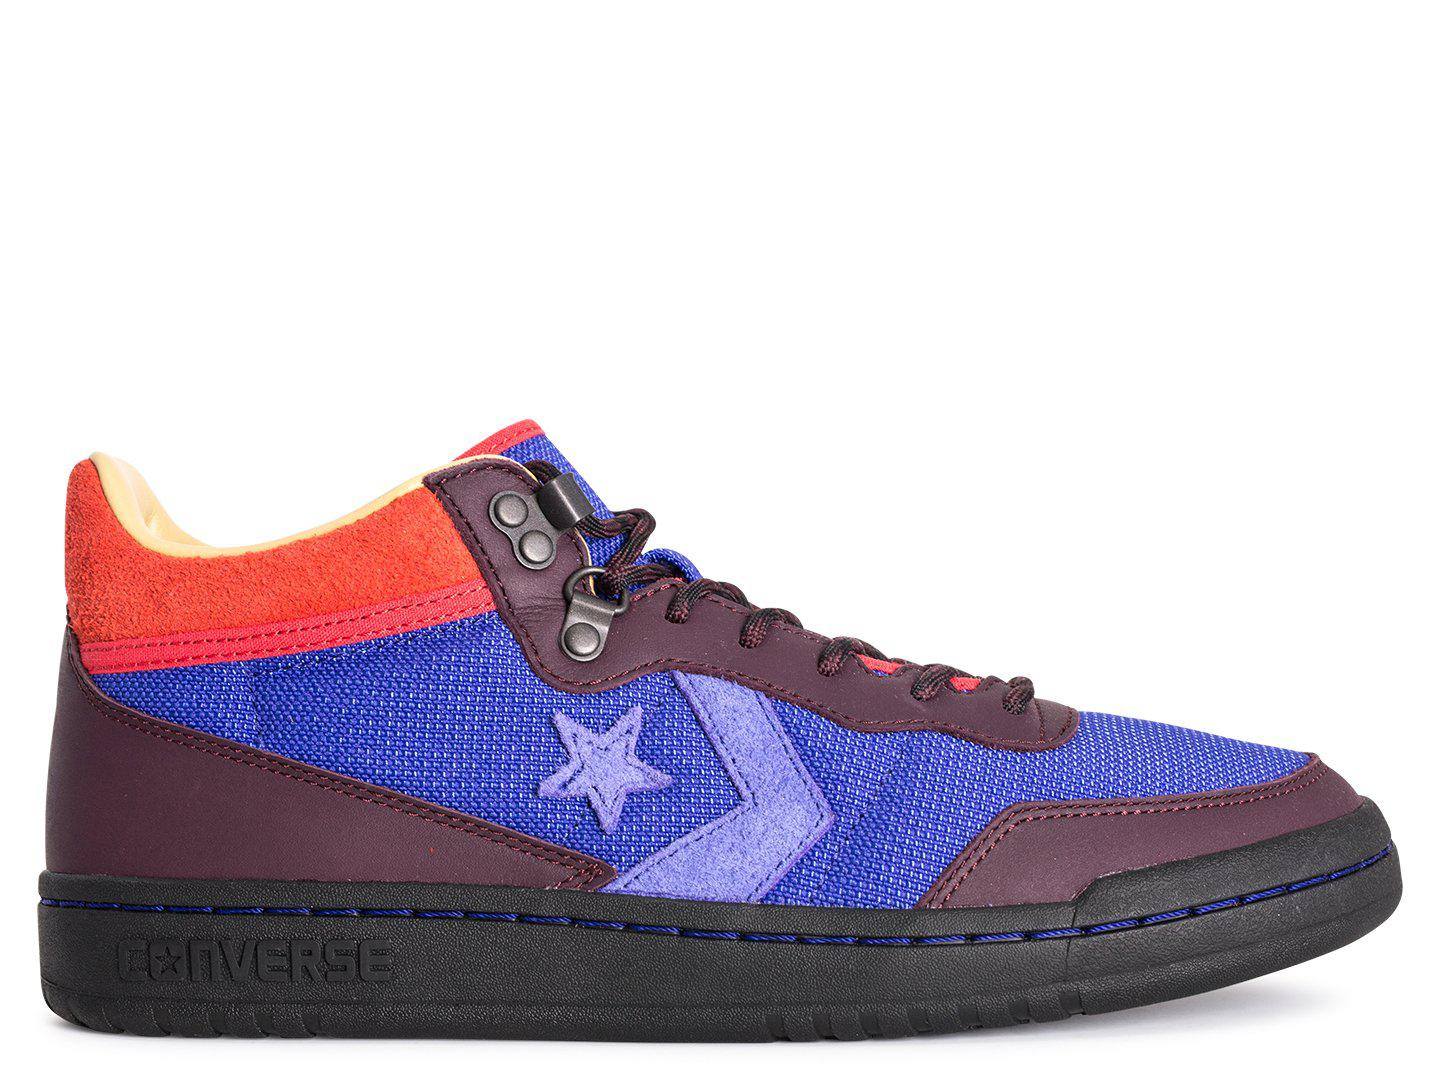 730b4182c6b6 Lyst - Converse Fastbreak Mid X Clot in Blue for Men